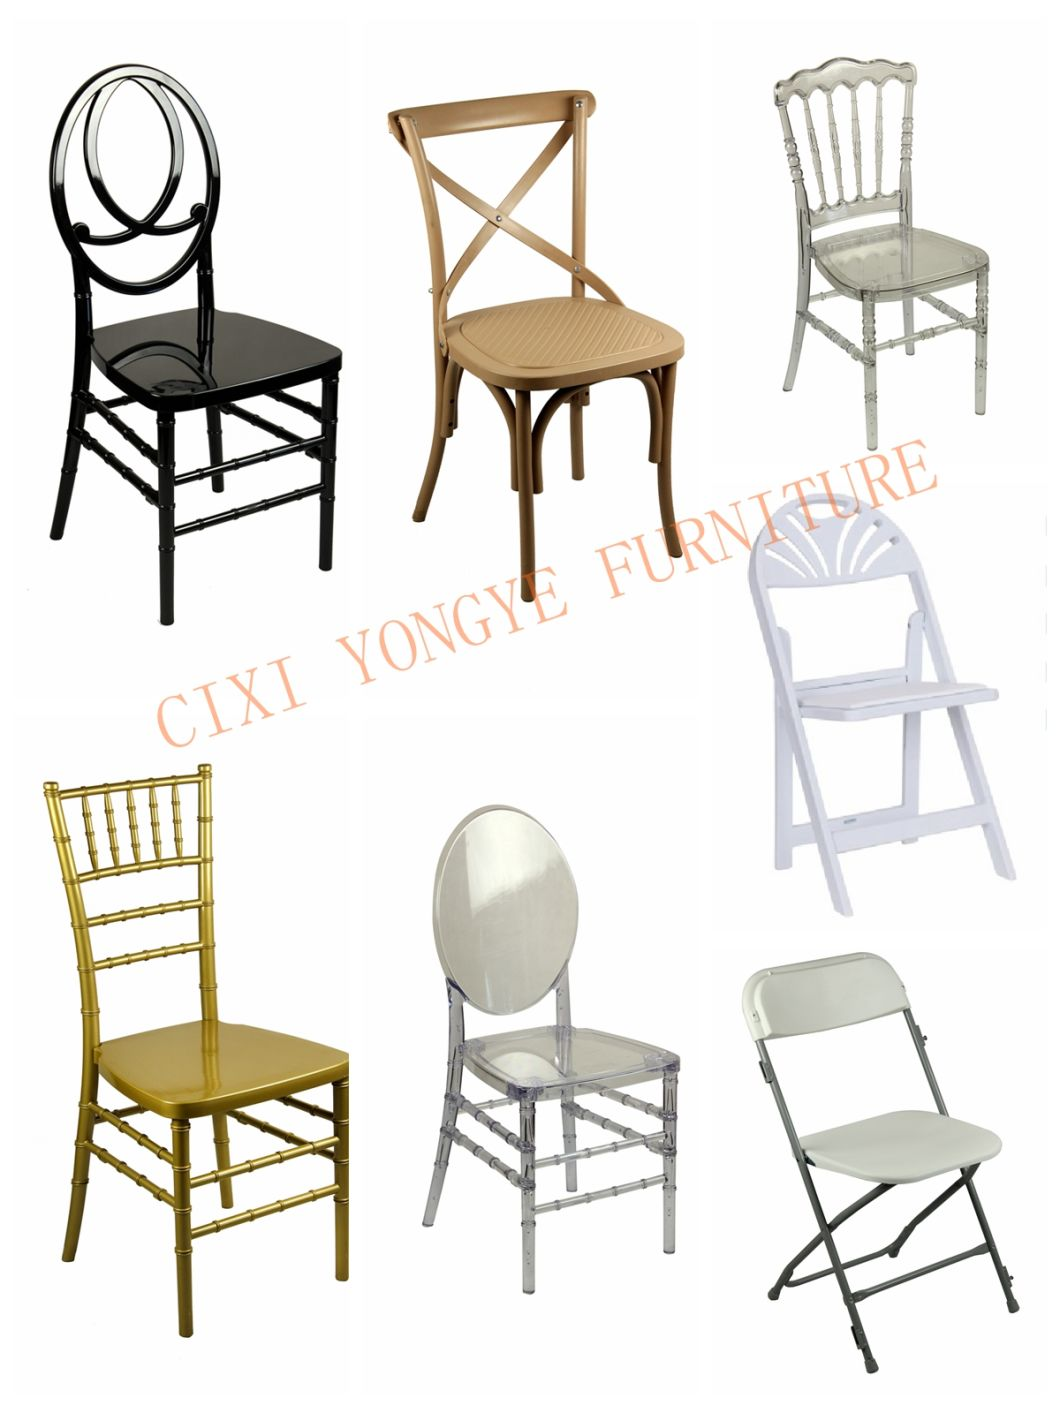 Phenomenal China Fan Back Resin Folding Chair Outdoor Wedding Plastic Folding Squirreltailoven Fun Painted Chair Ideas Images Squirreltailovenorg